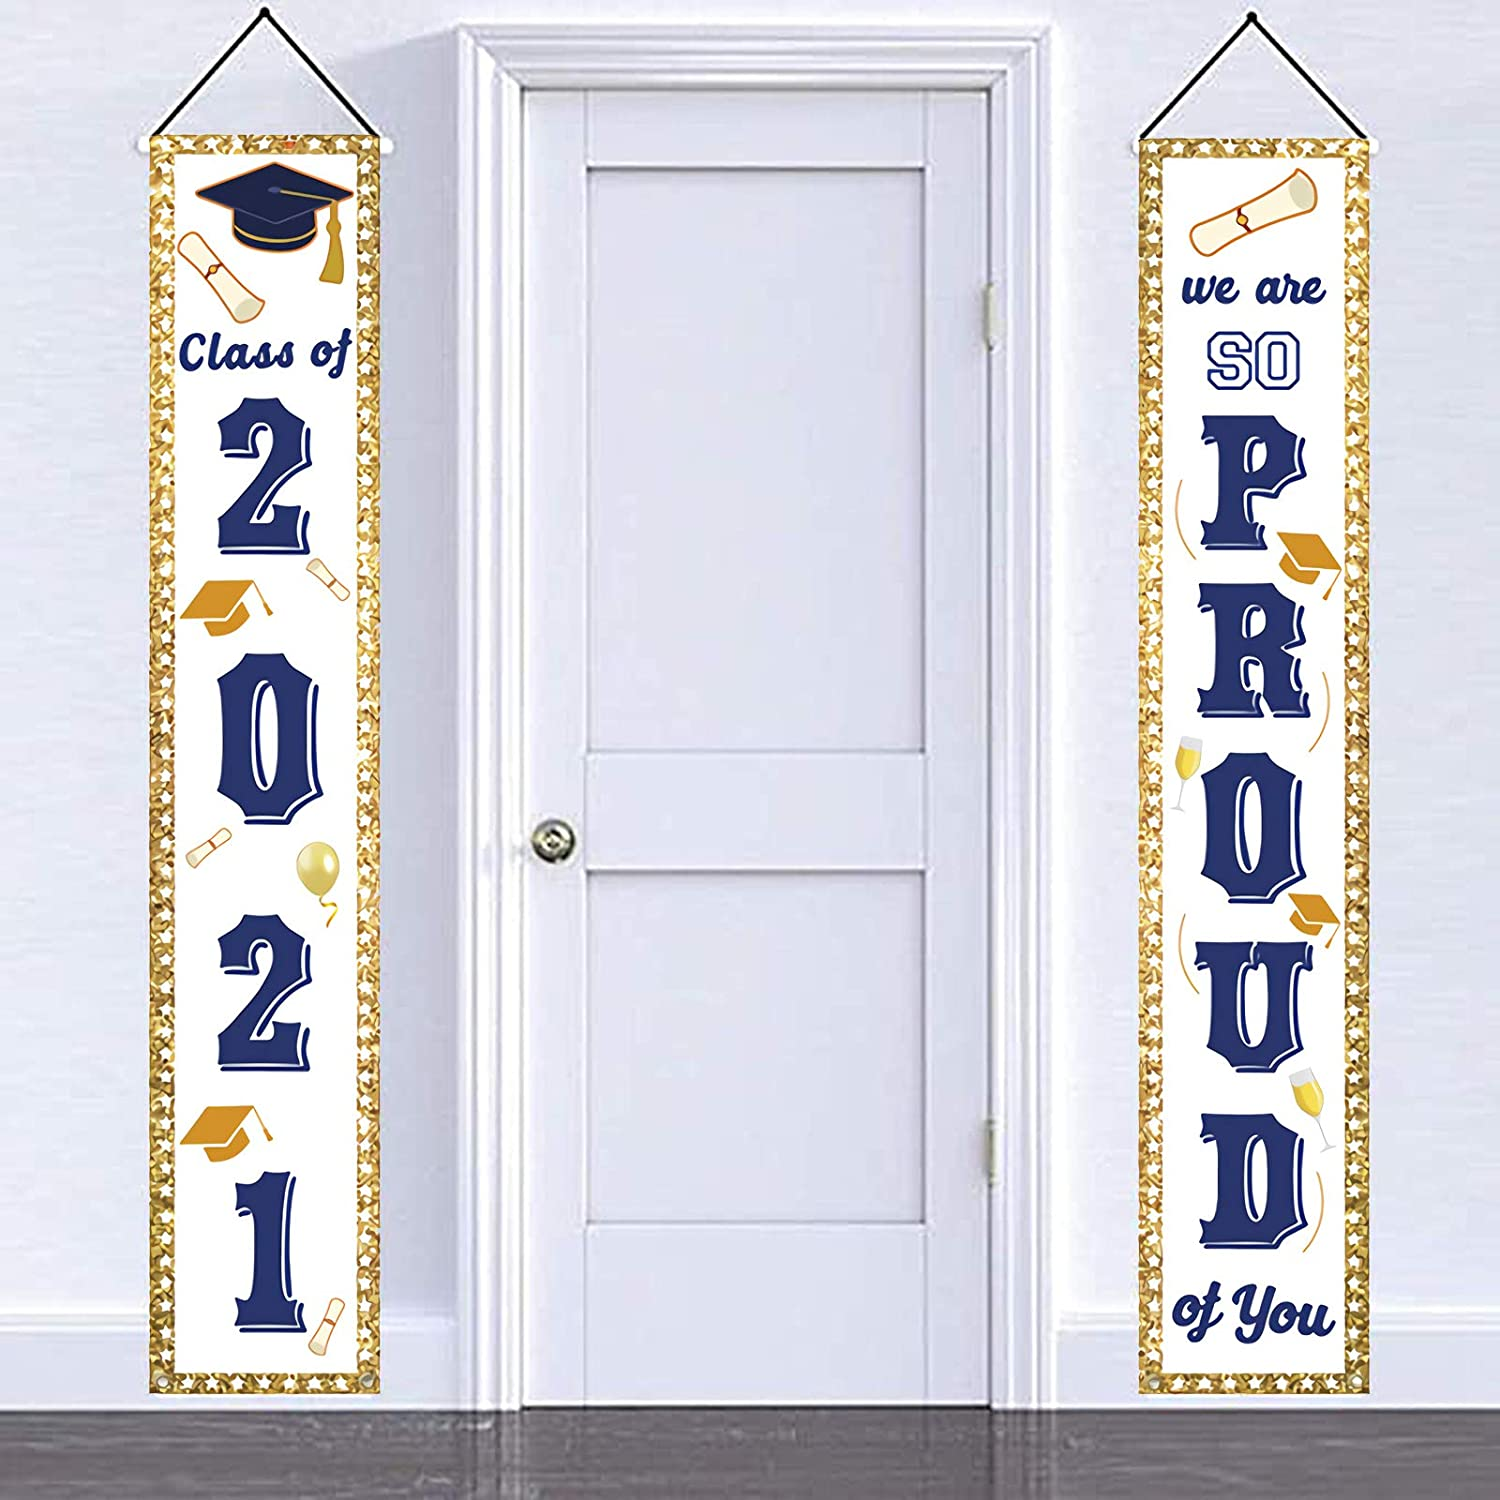 Graduation Party Supplies 2021 Graduation Decorations 2021 Porch Sign Banner Door Decorations 2021 Graduation Banners Gold Navy Class of 2021 We are SO Proud of You Door Porch Sign Outdoor Décor